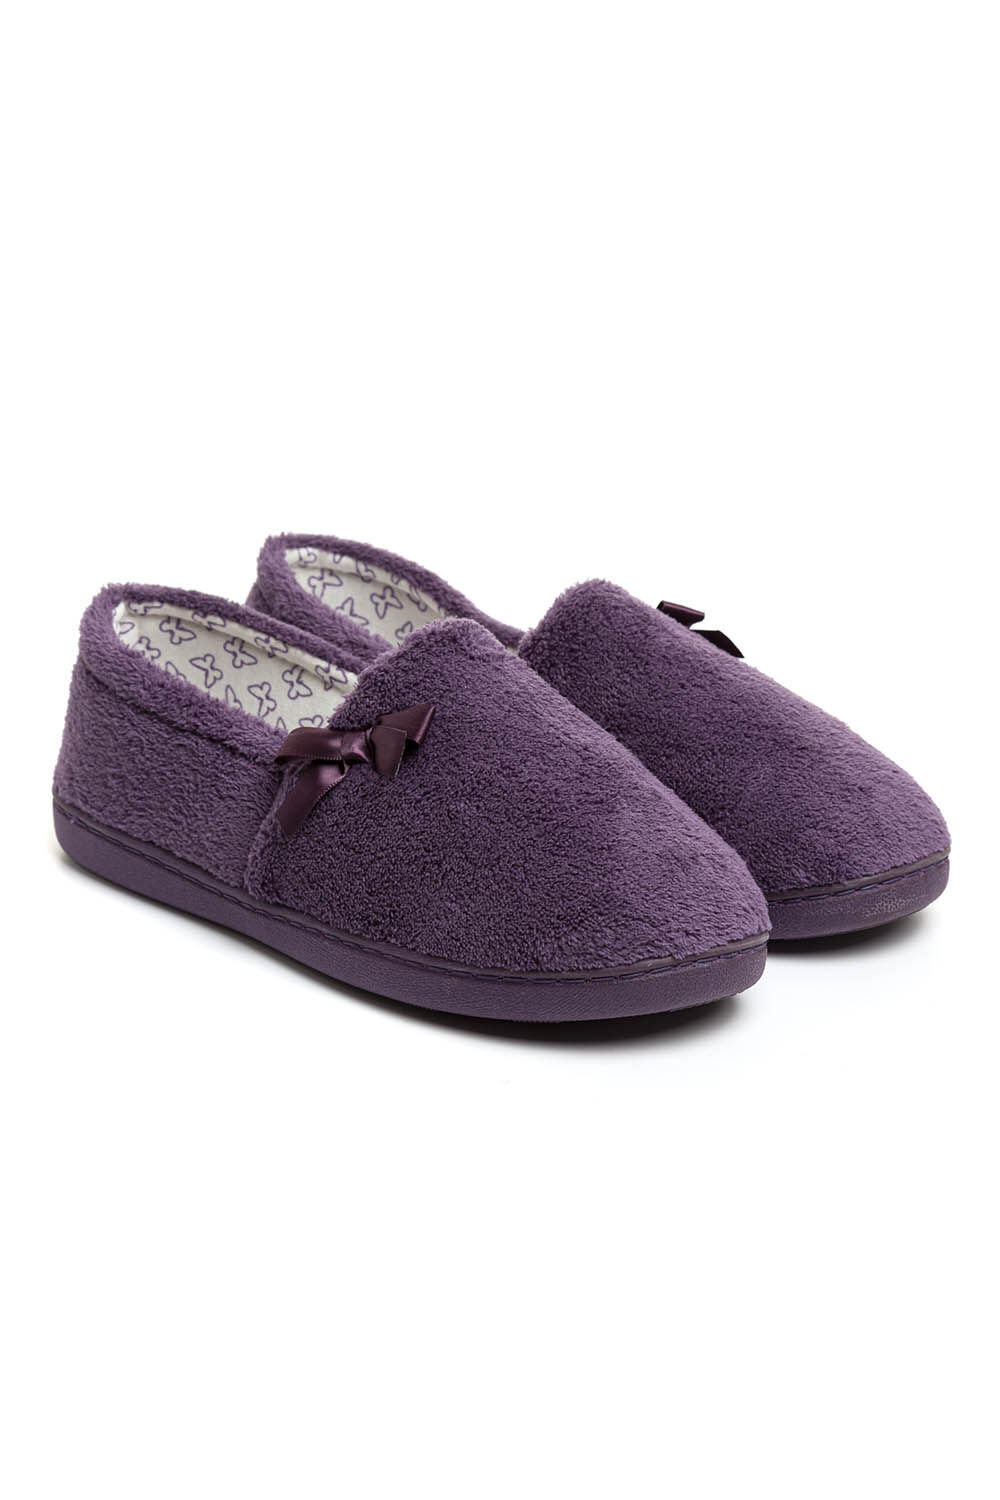 LADIES WOMENS DARK BLUE TOWELLING MOCCASIN FULL SLIPPERS WITH BOW HARD SOLE 3-8